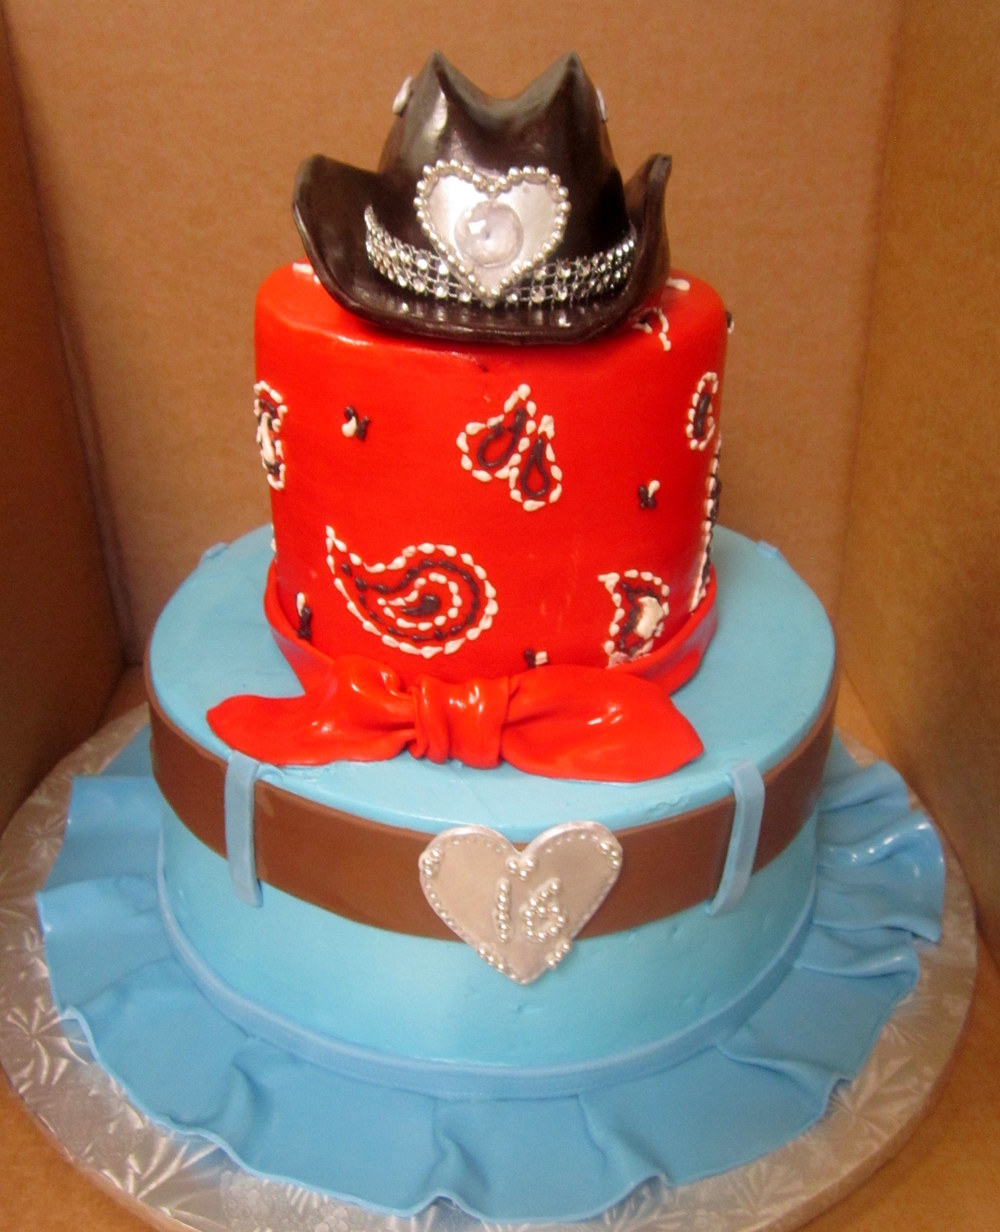 cowboy hat and bandana cake.jpg